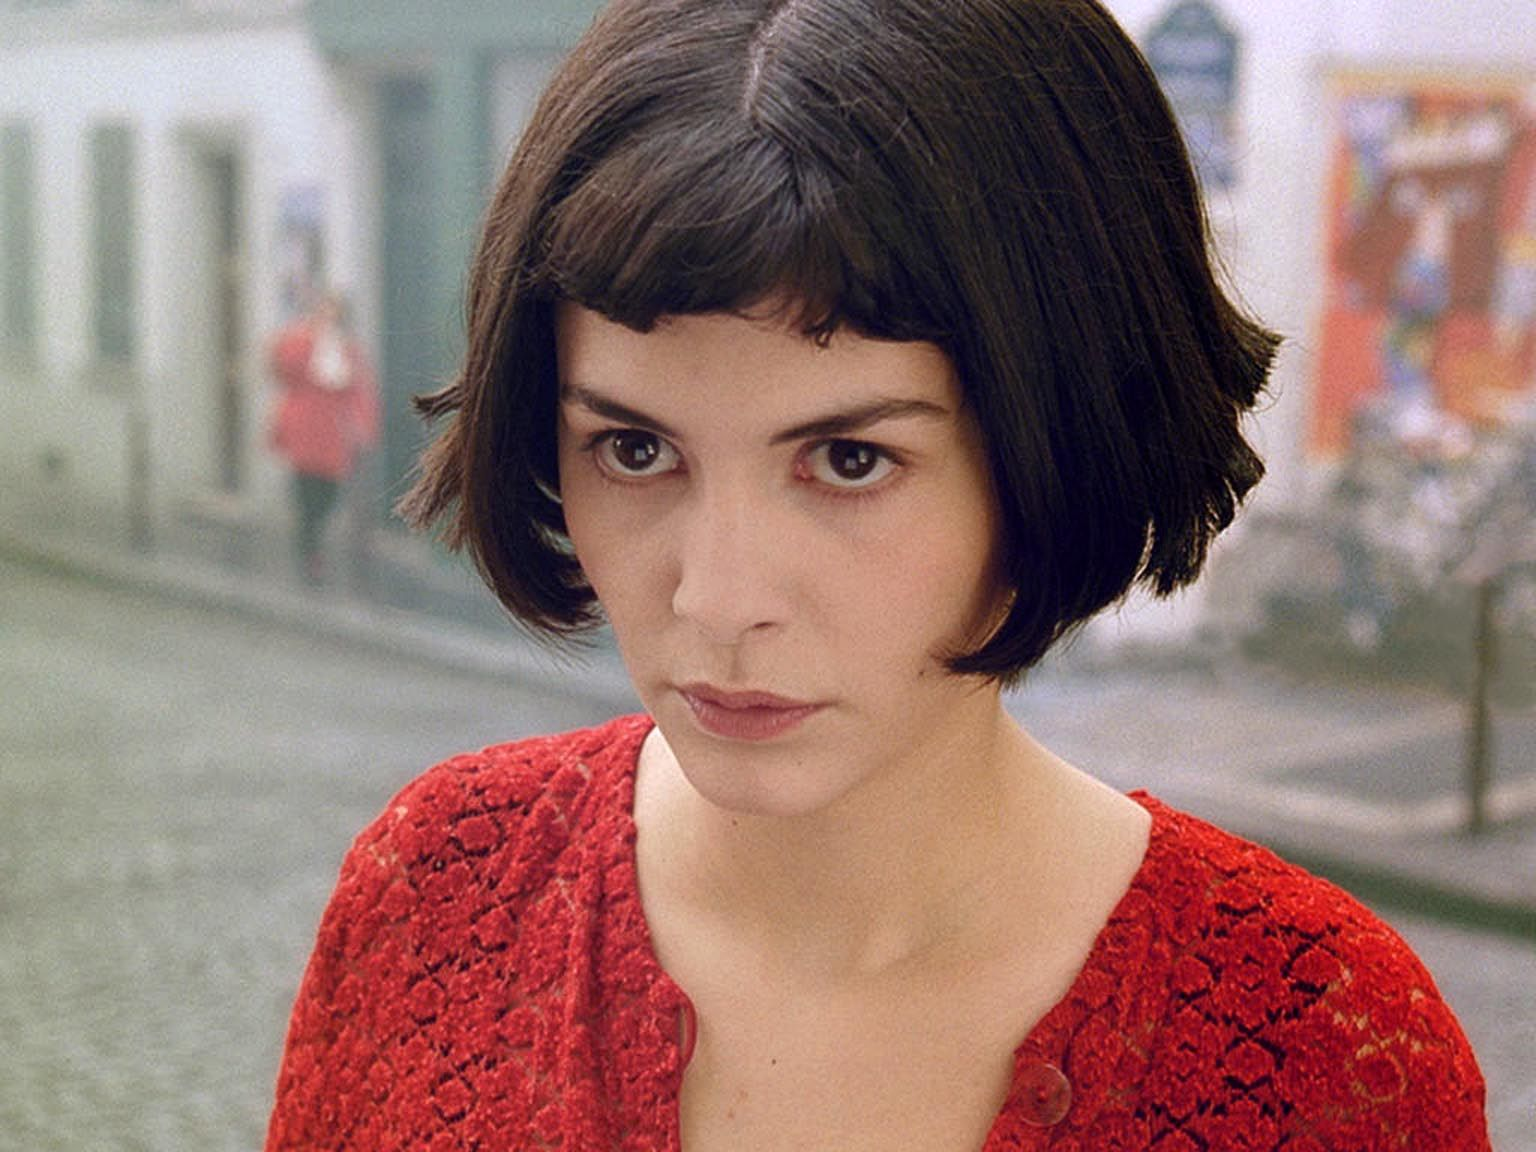 Best Film And Movie Hair - Amelie Bob